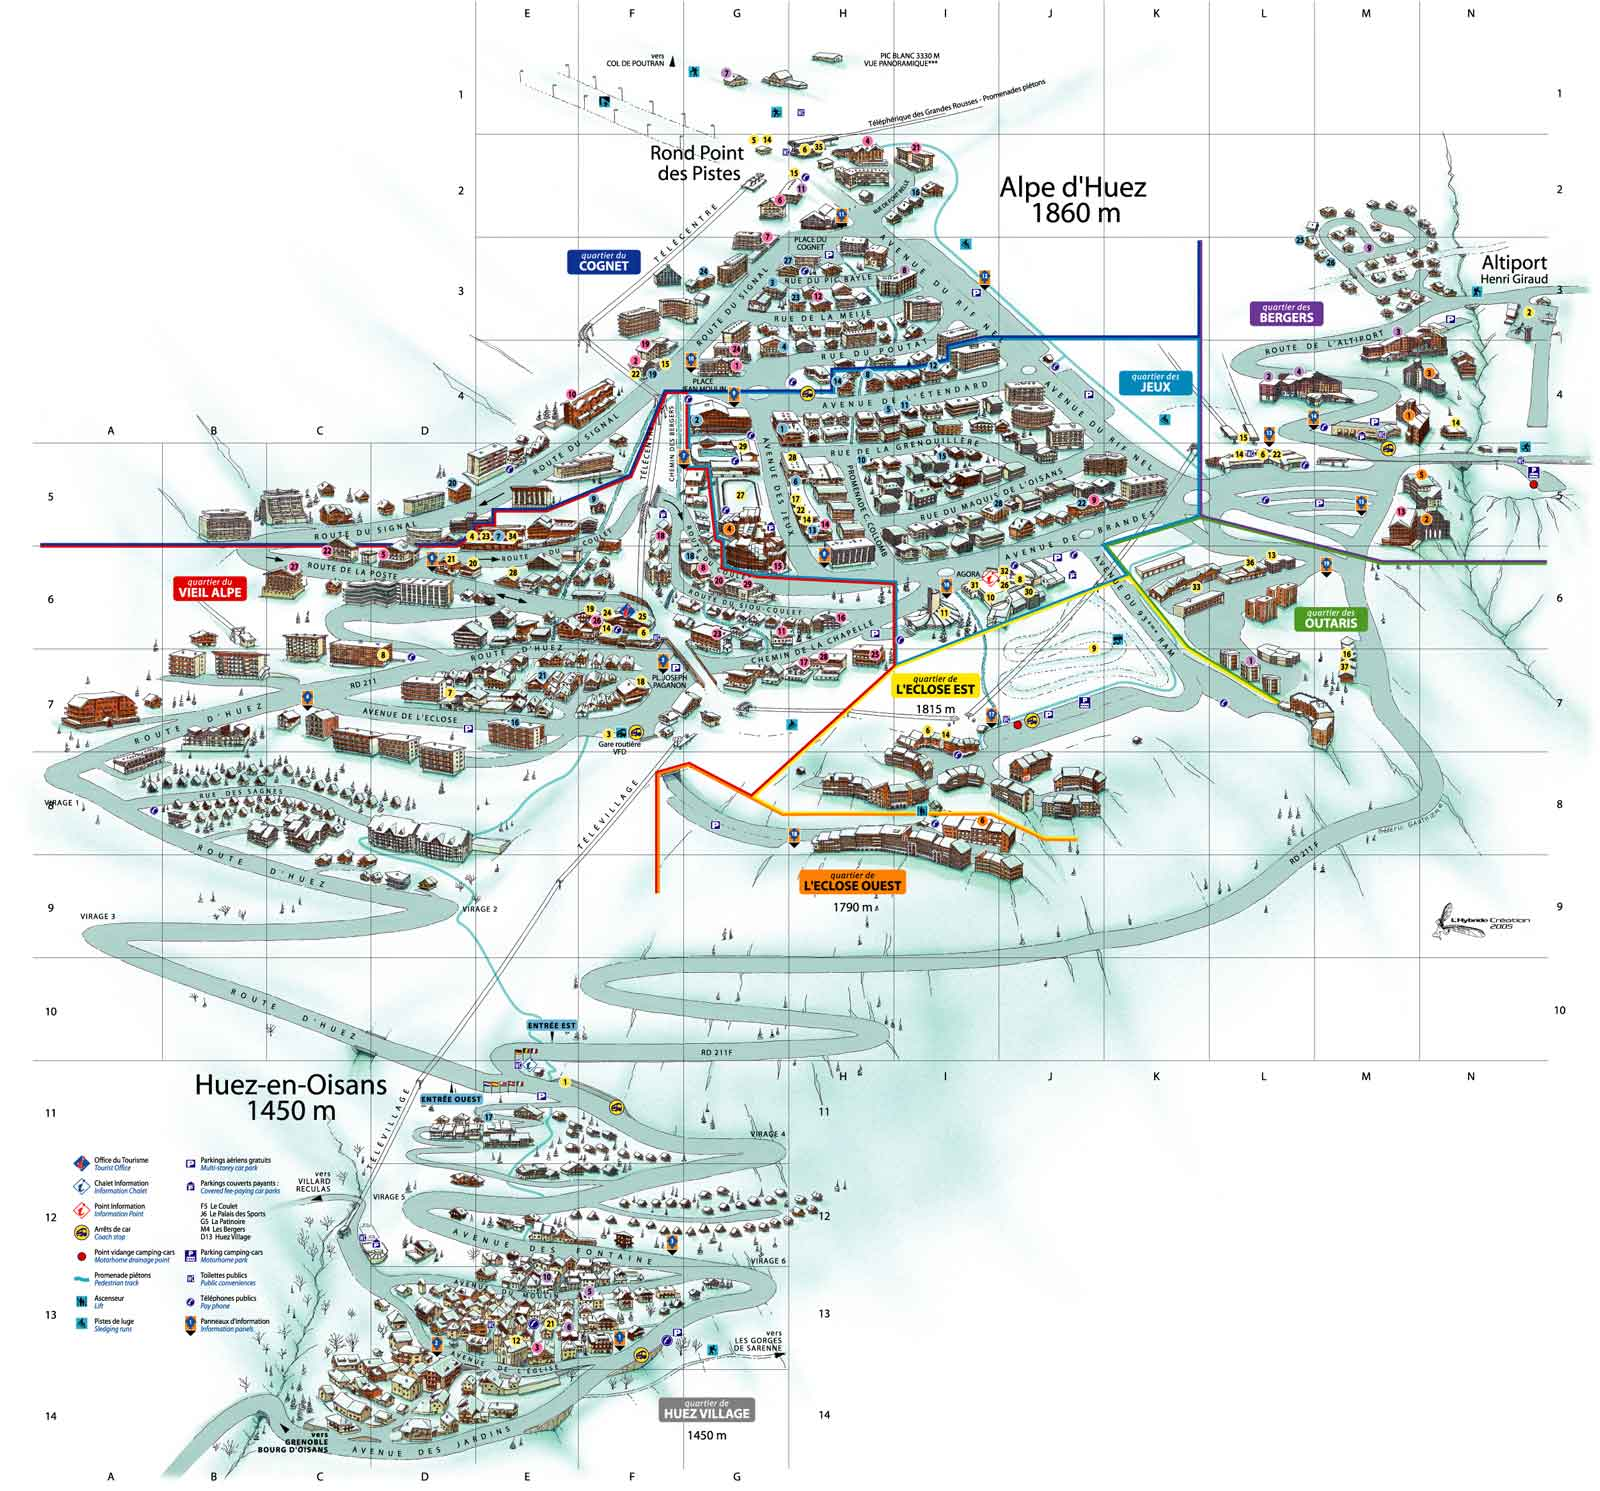 Maps of the ski resorts